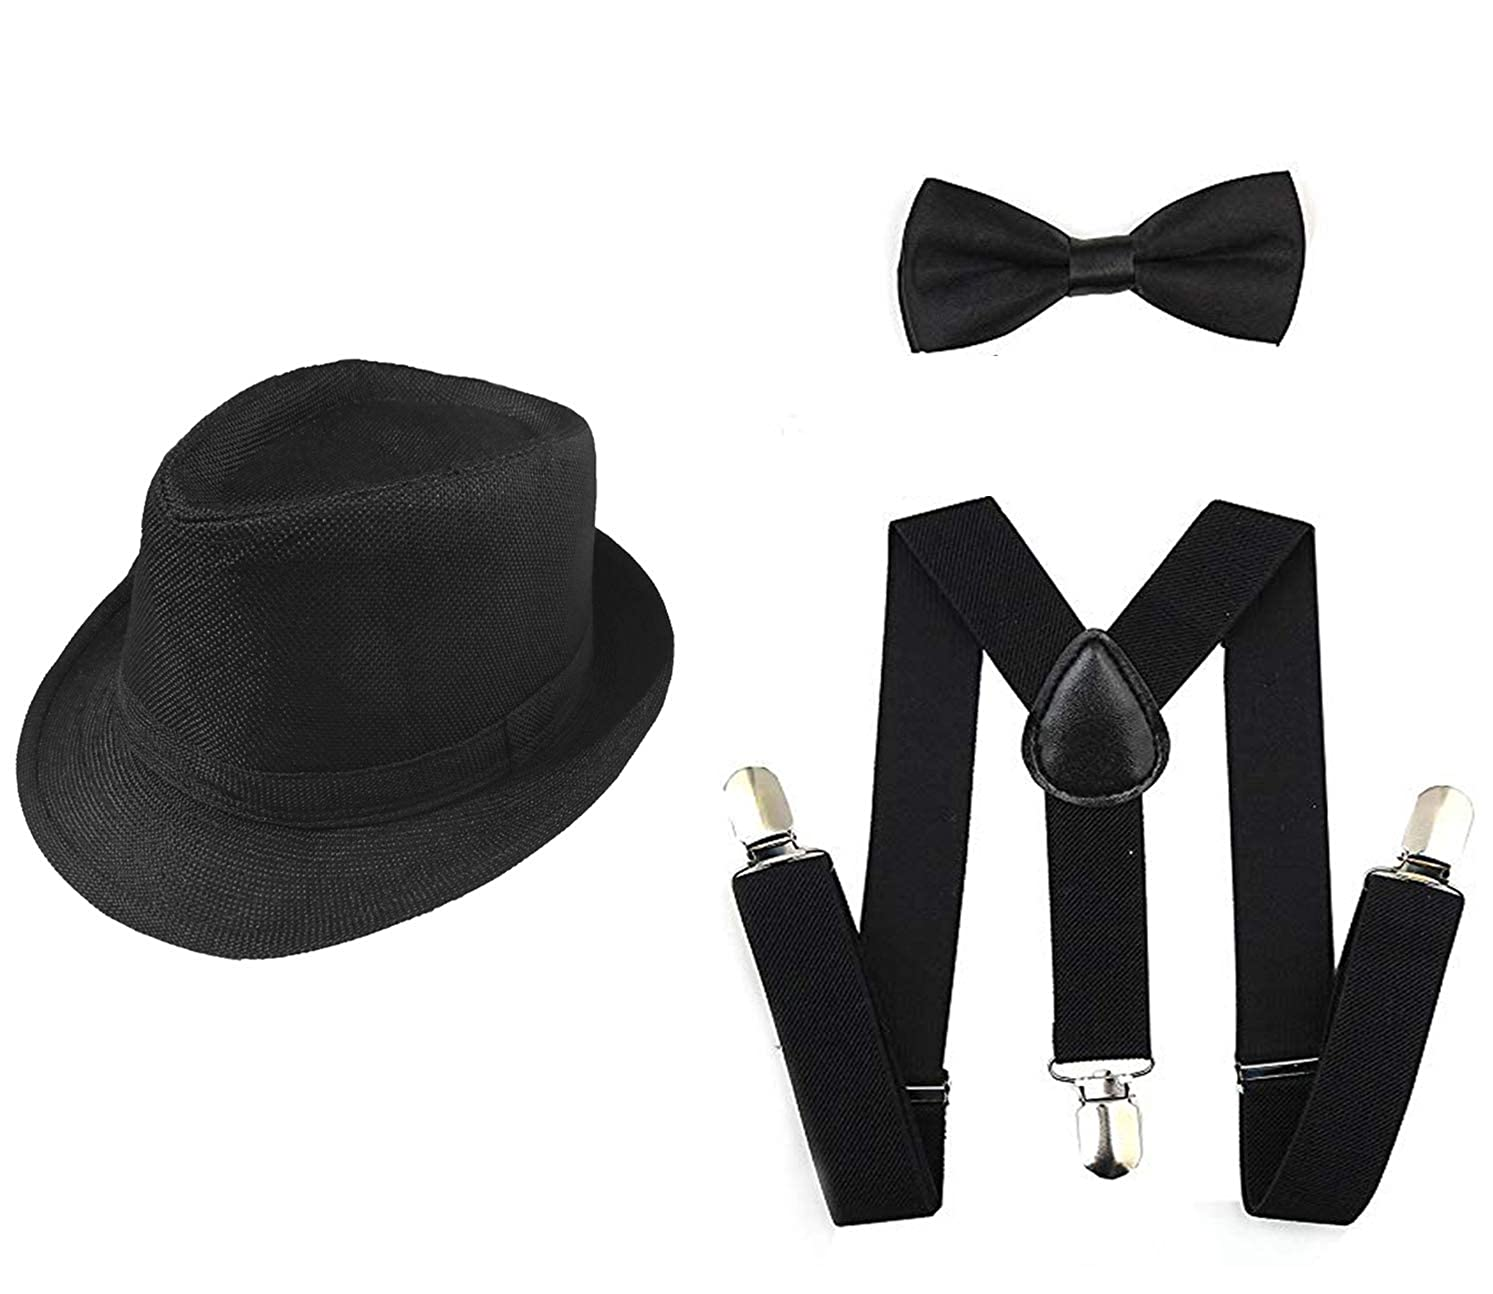 8be69b7e115 1920s Set Fedora Gangster Hat Costume Accessory Y-Back Suspenders   Pre  Tied Bow Tie